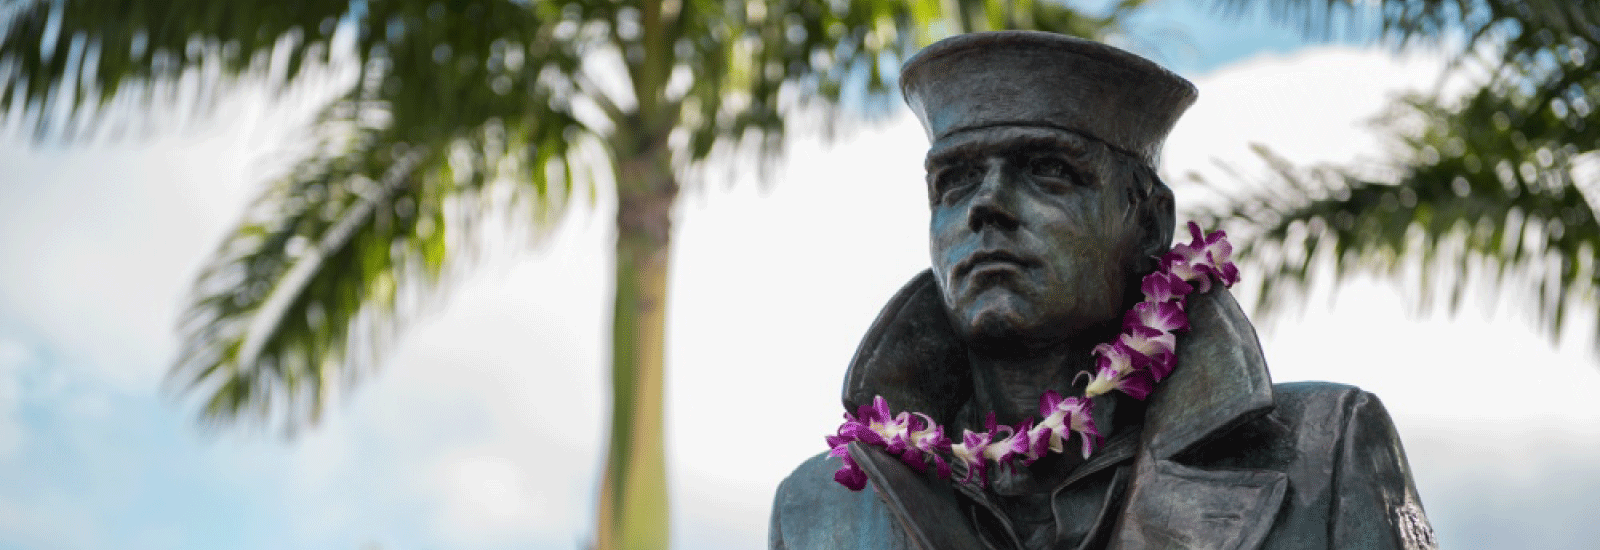 Joint Base Pearl Harbor-Hickam Visitor Center